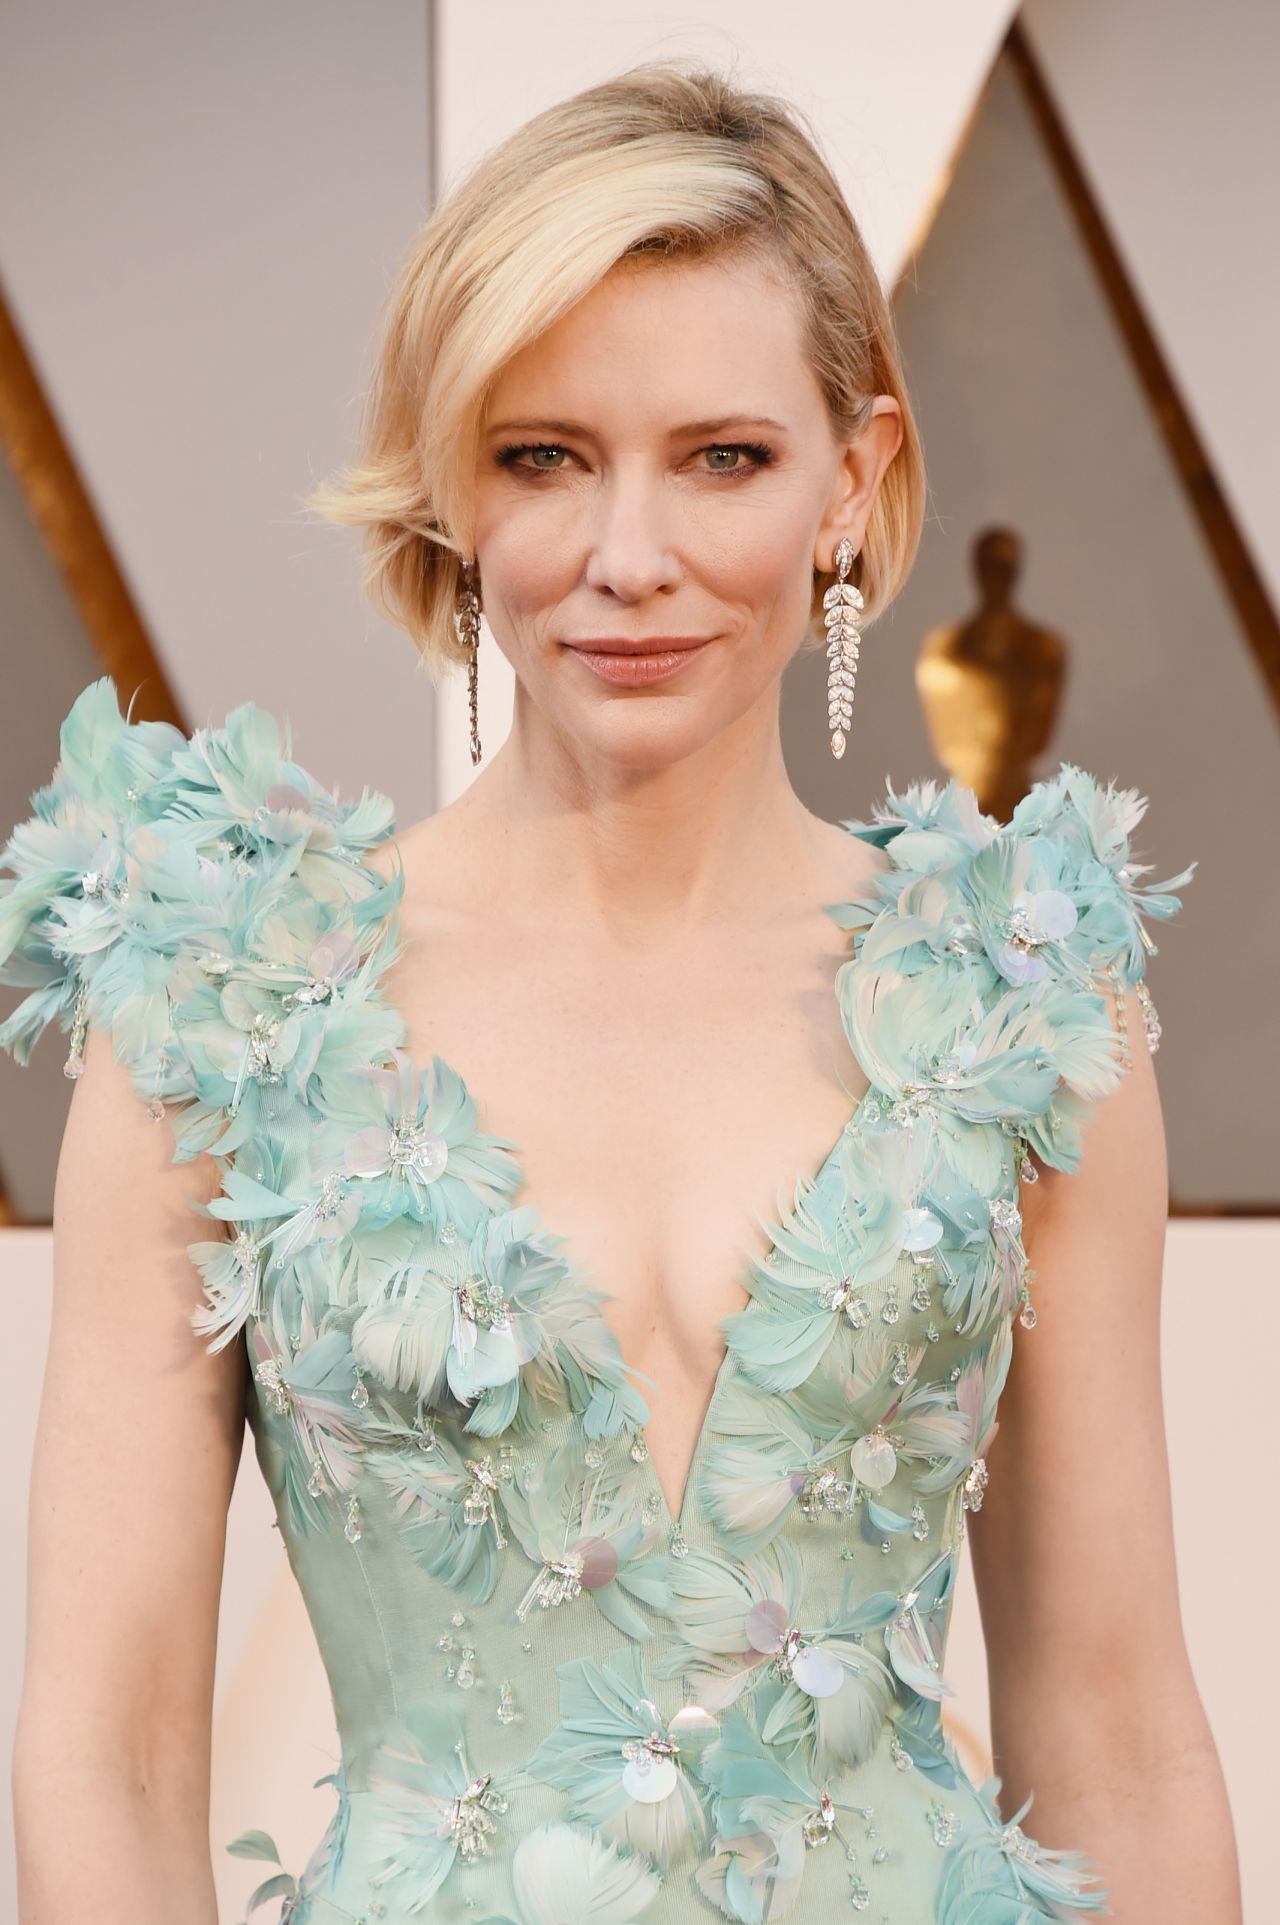 cate-blanchett-oscars-2016-in-hollywood-ca-2-28-2016-1